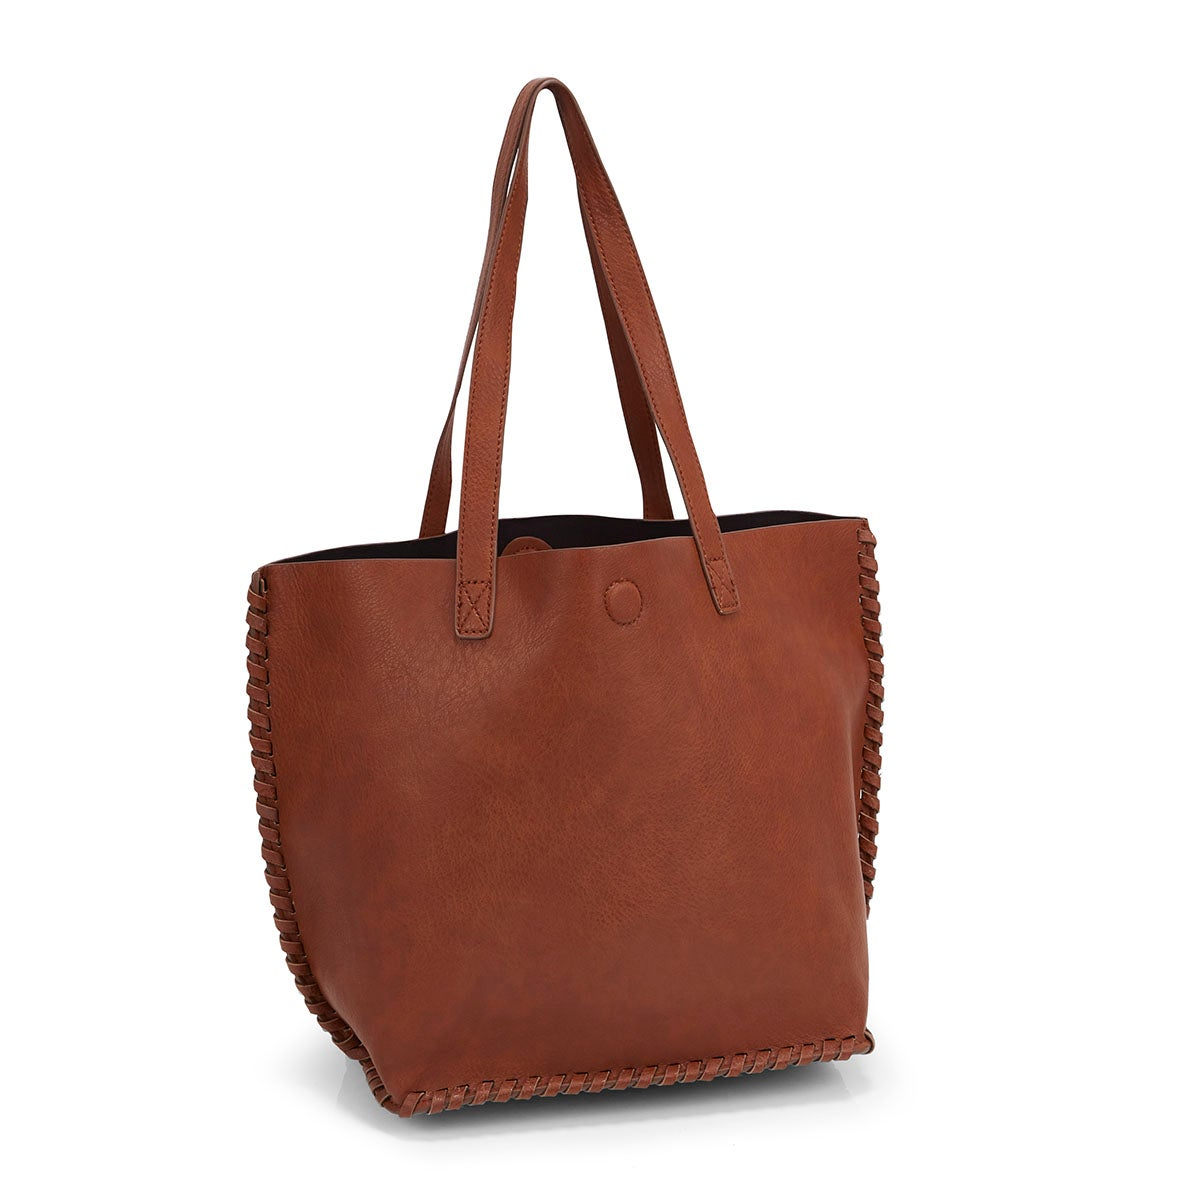 Women's 5414 cognac stitched tote bag